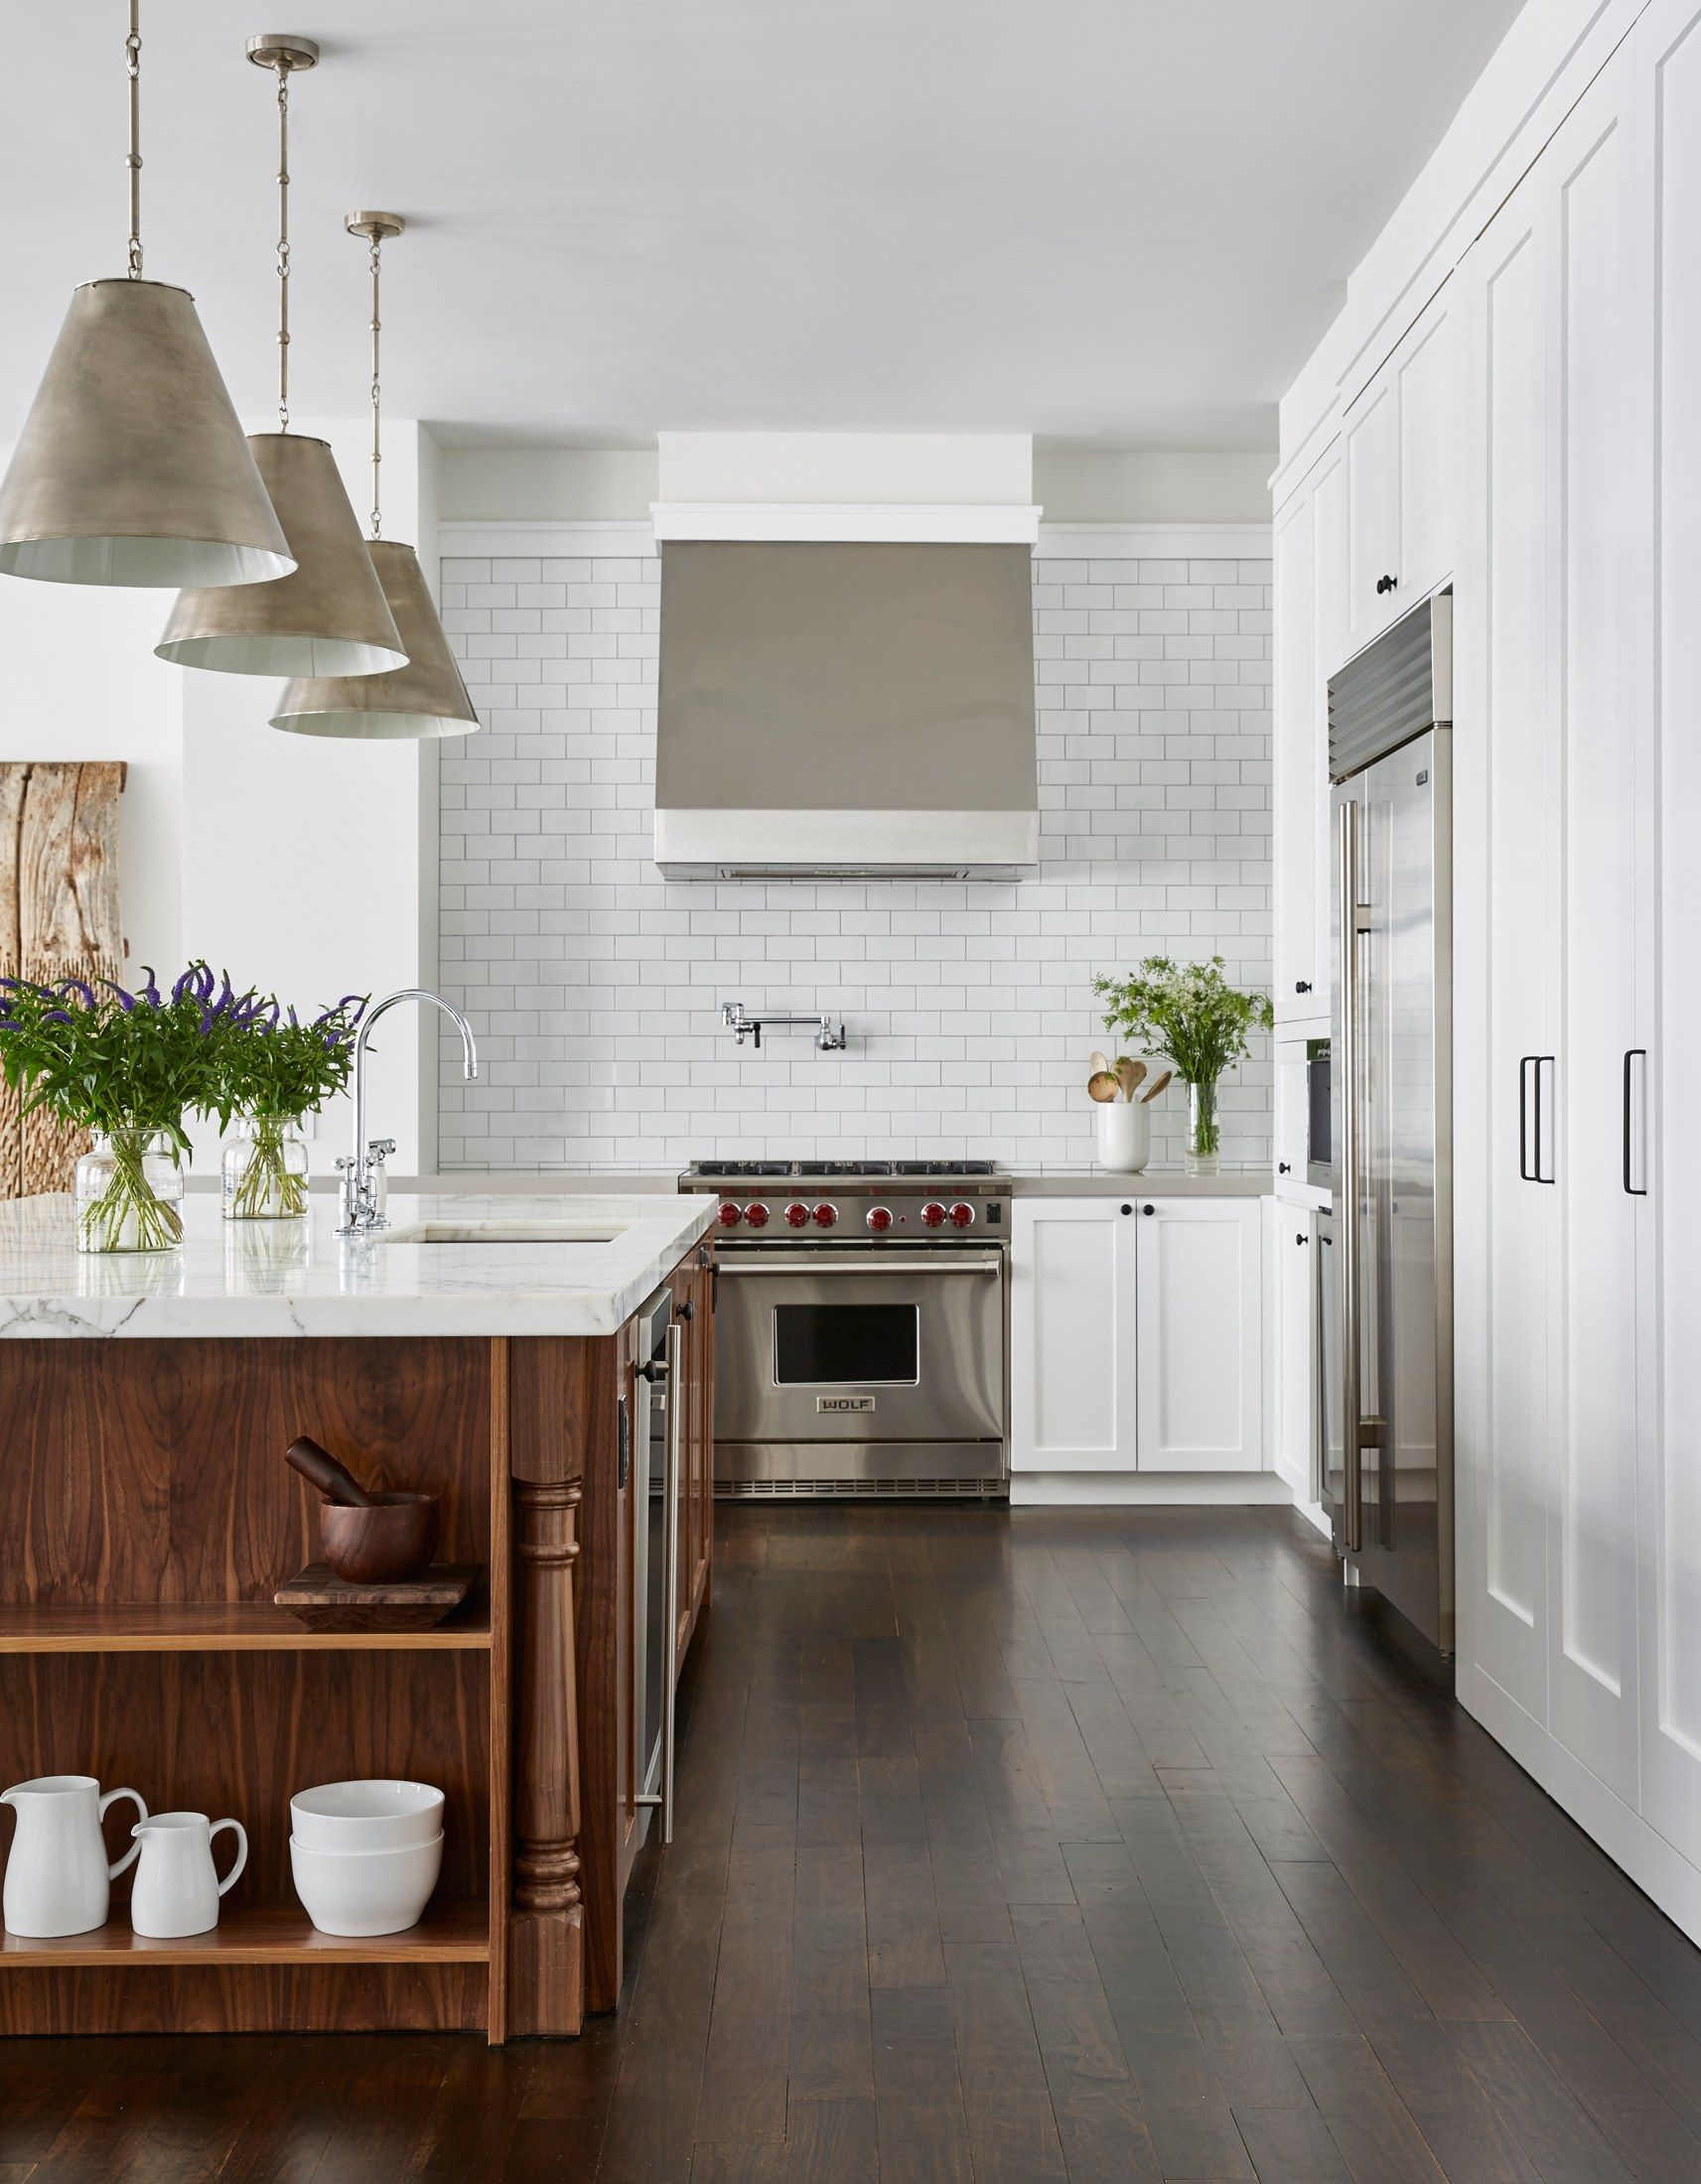 A Modern New York Apartment Awash In Neutral Hues Kitchen Inspiration Design Spacious Kitchens Kitchen Inspirations